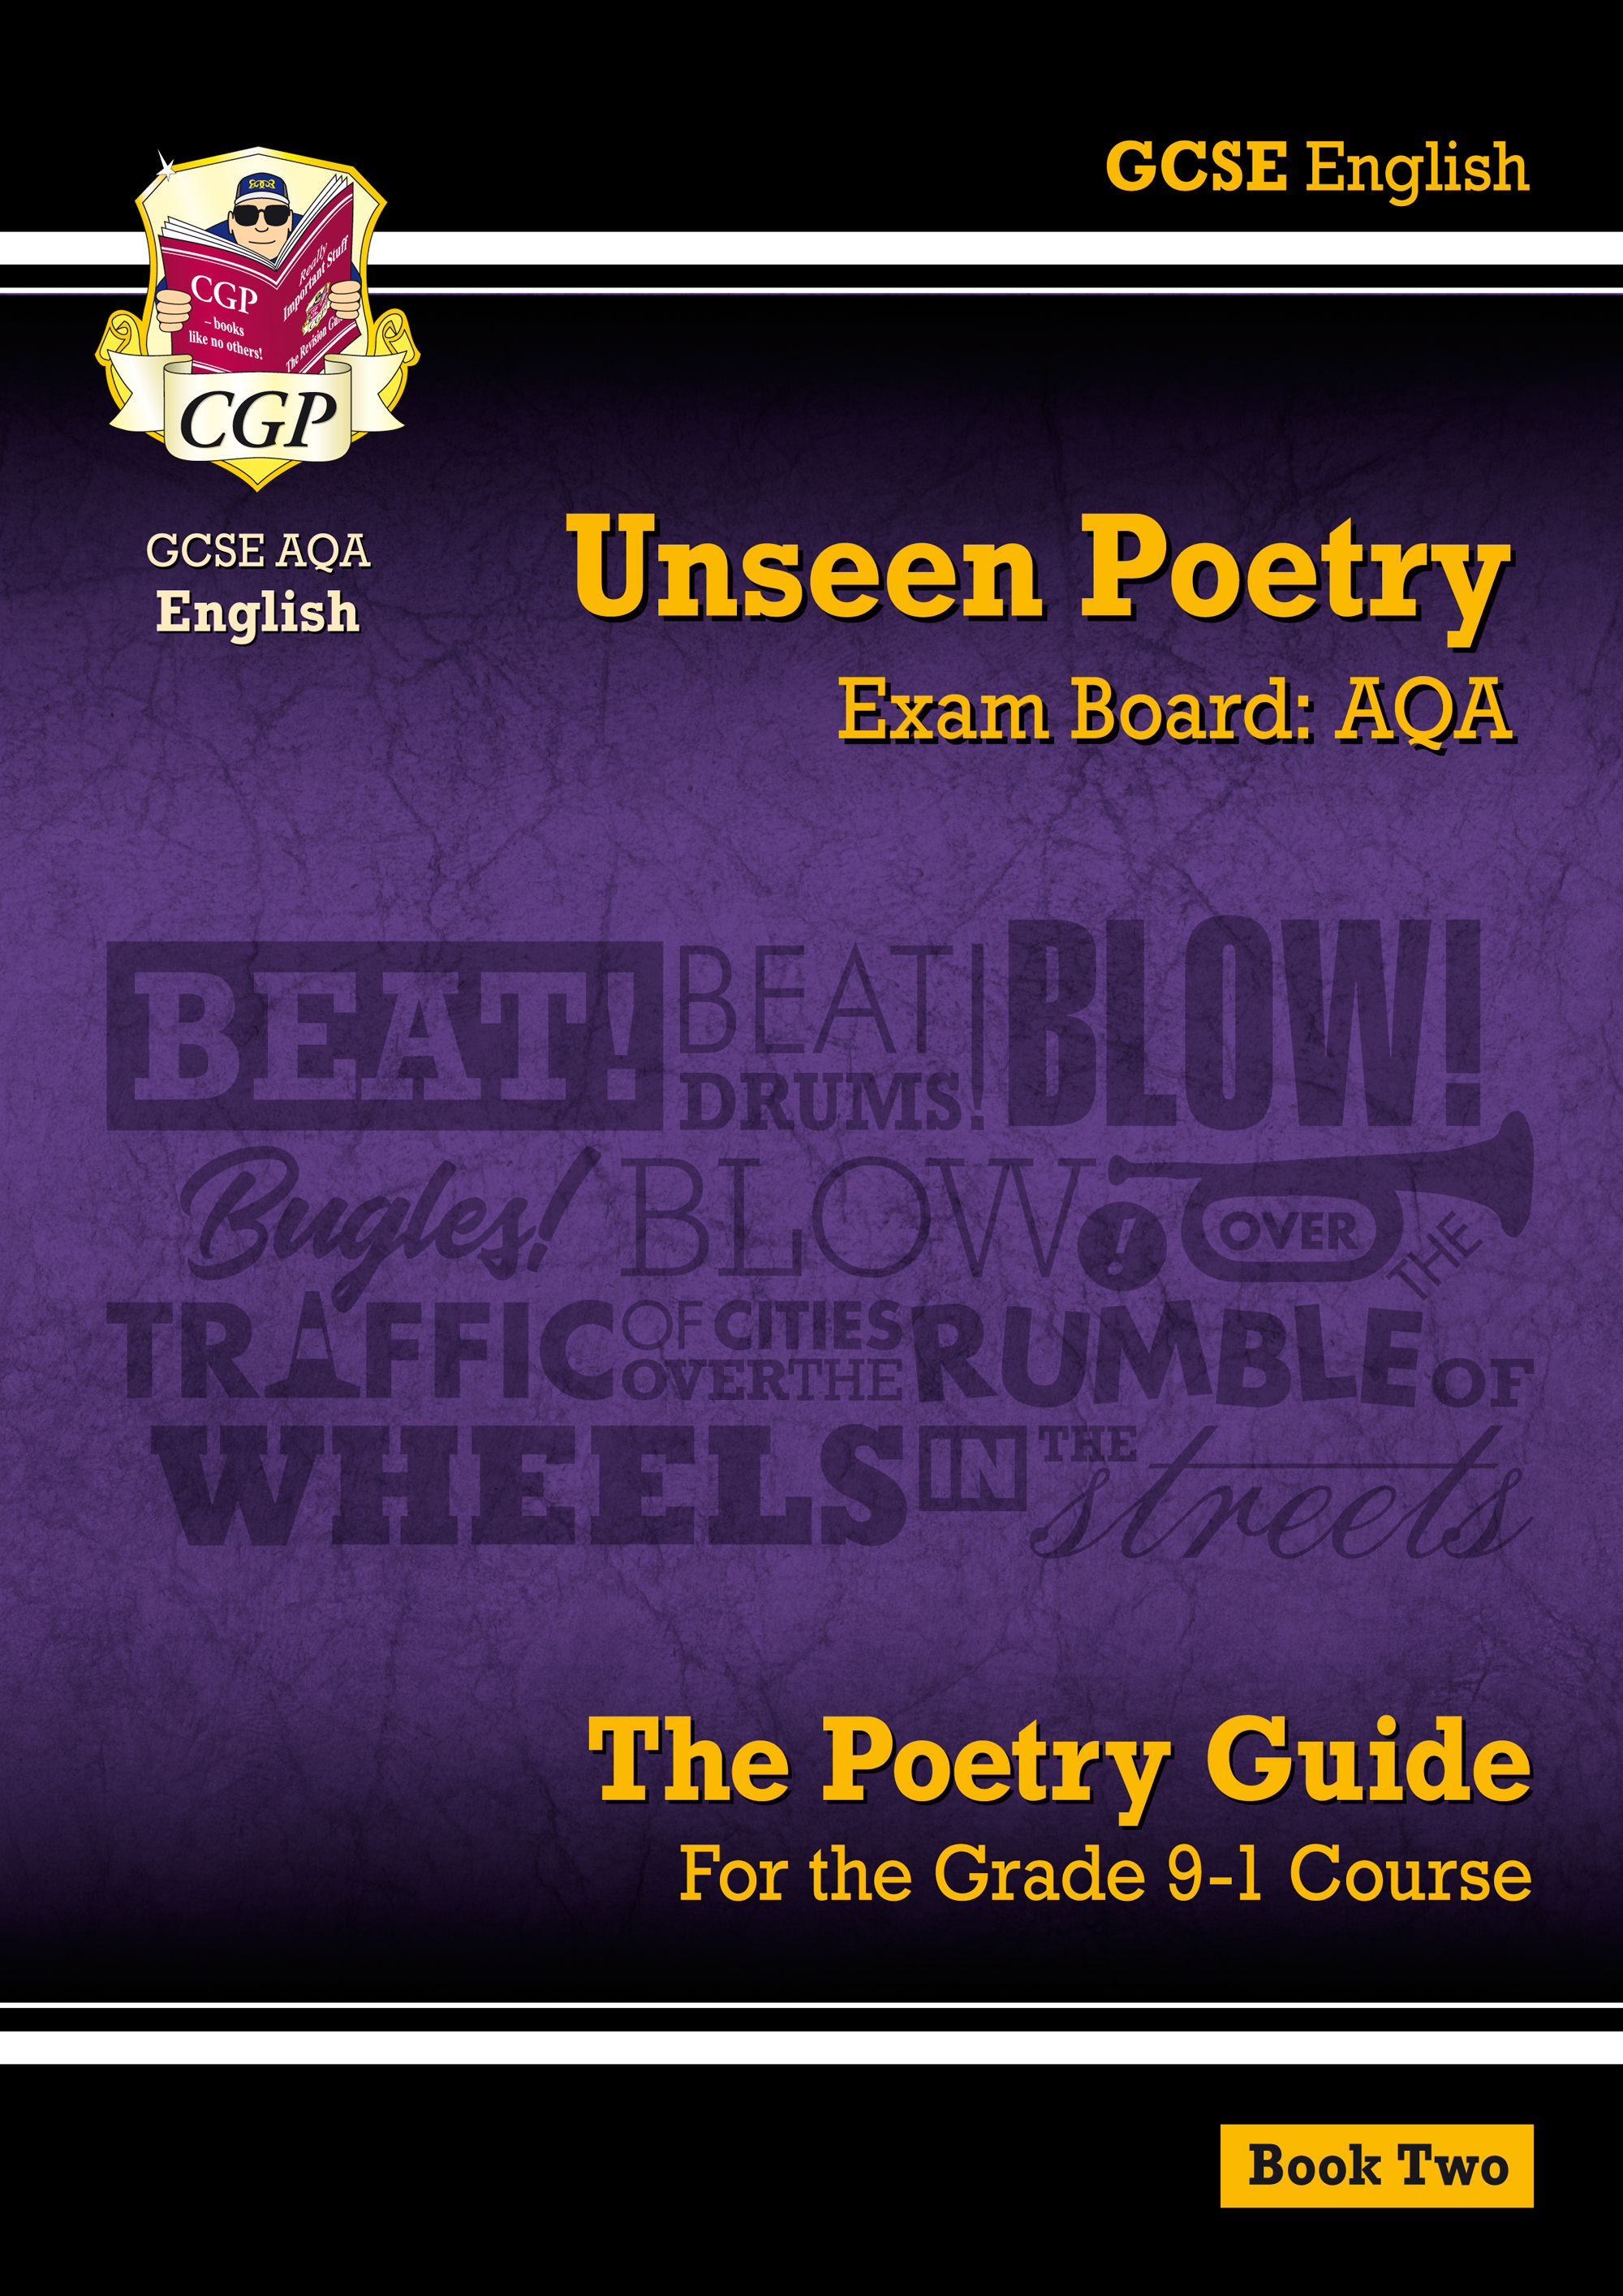 EUAR241 - Grade 9-1 GCSE English Literature AQA Unseen Poetry Guide - Book 2